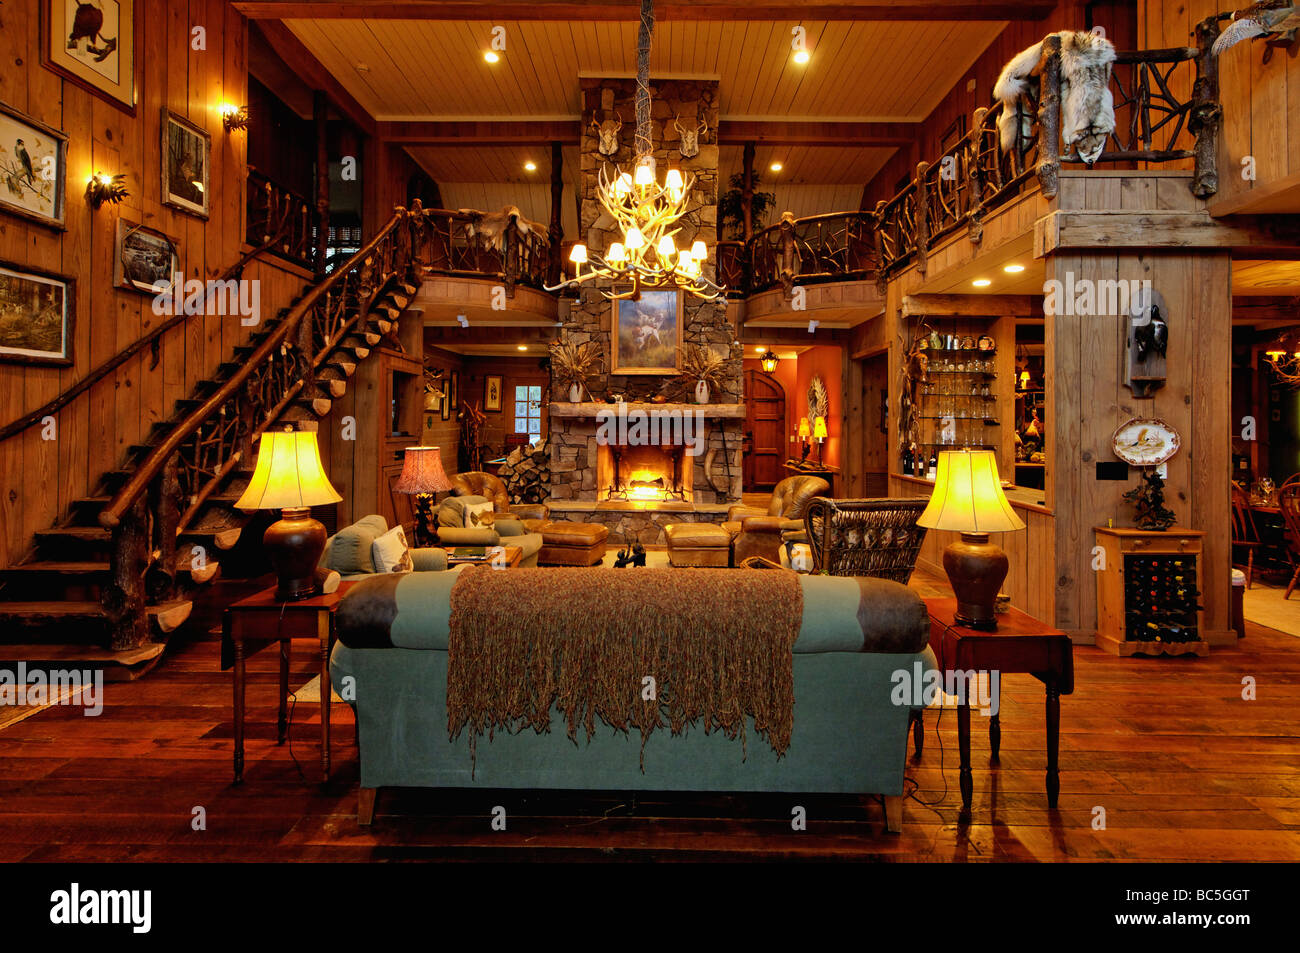 Hunting Lodge Interior High Resolution Stock Photography And Images Alamy